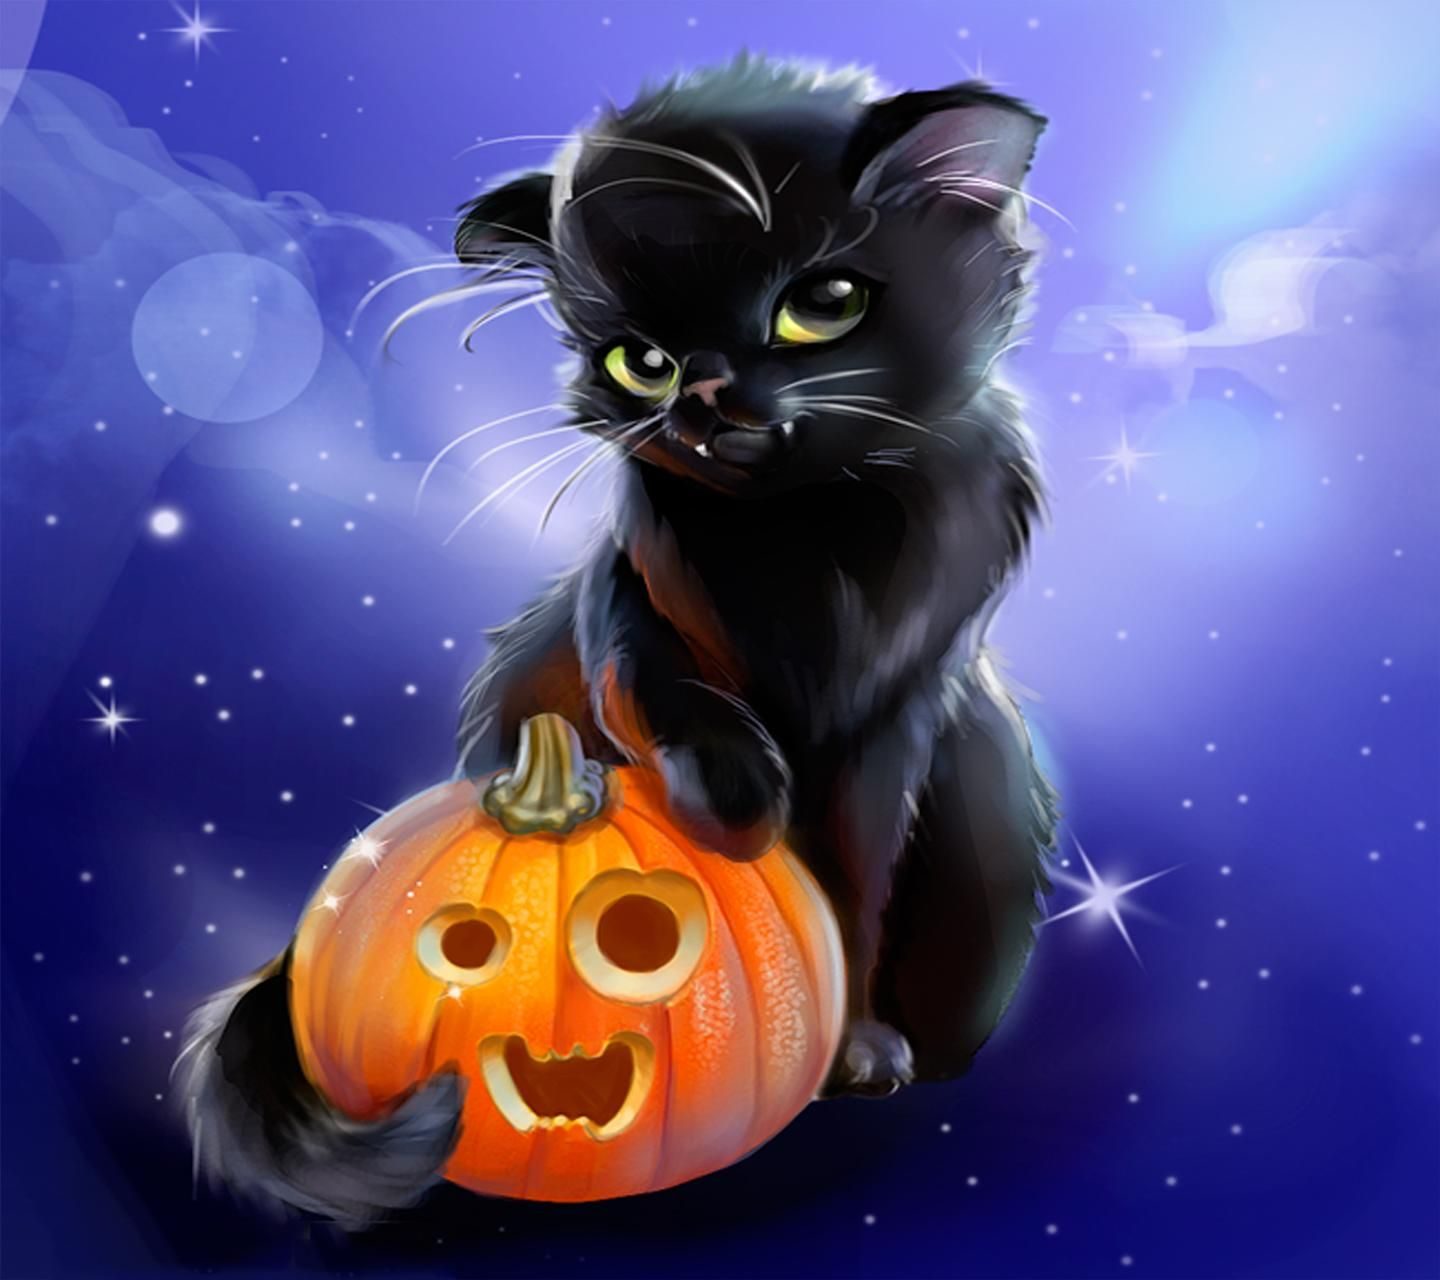 Download Halloween Kitty Wallpaper By Venus Ef Free On Zedge Now Browse Millions Of Popular Hallowe Black Cat Halloween Halloween Pictures Halloween Cat